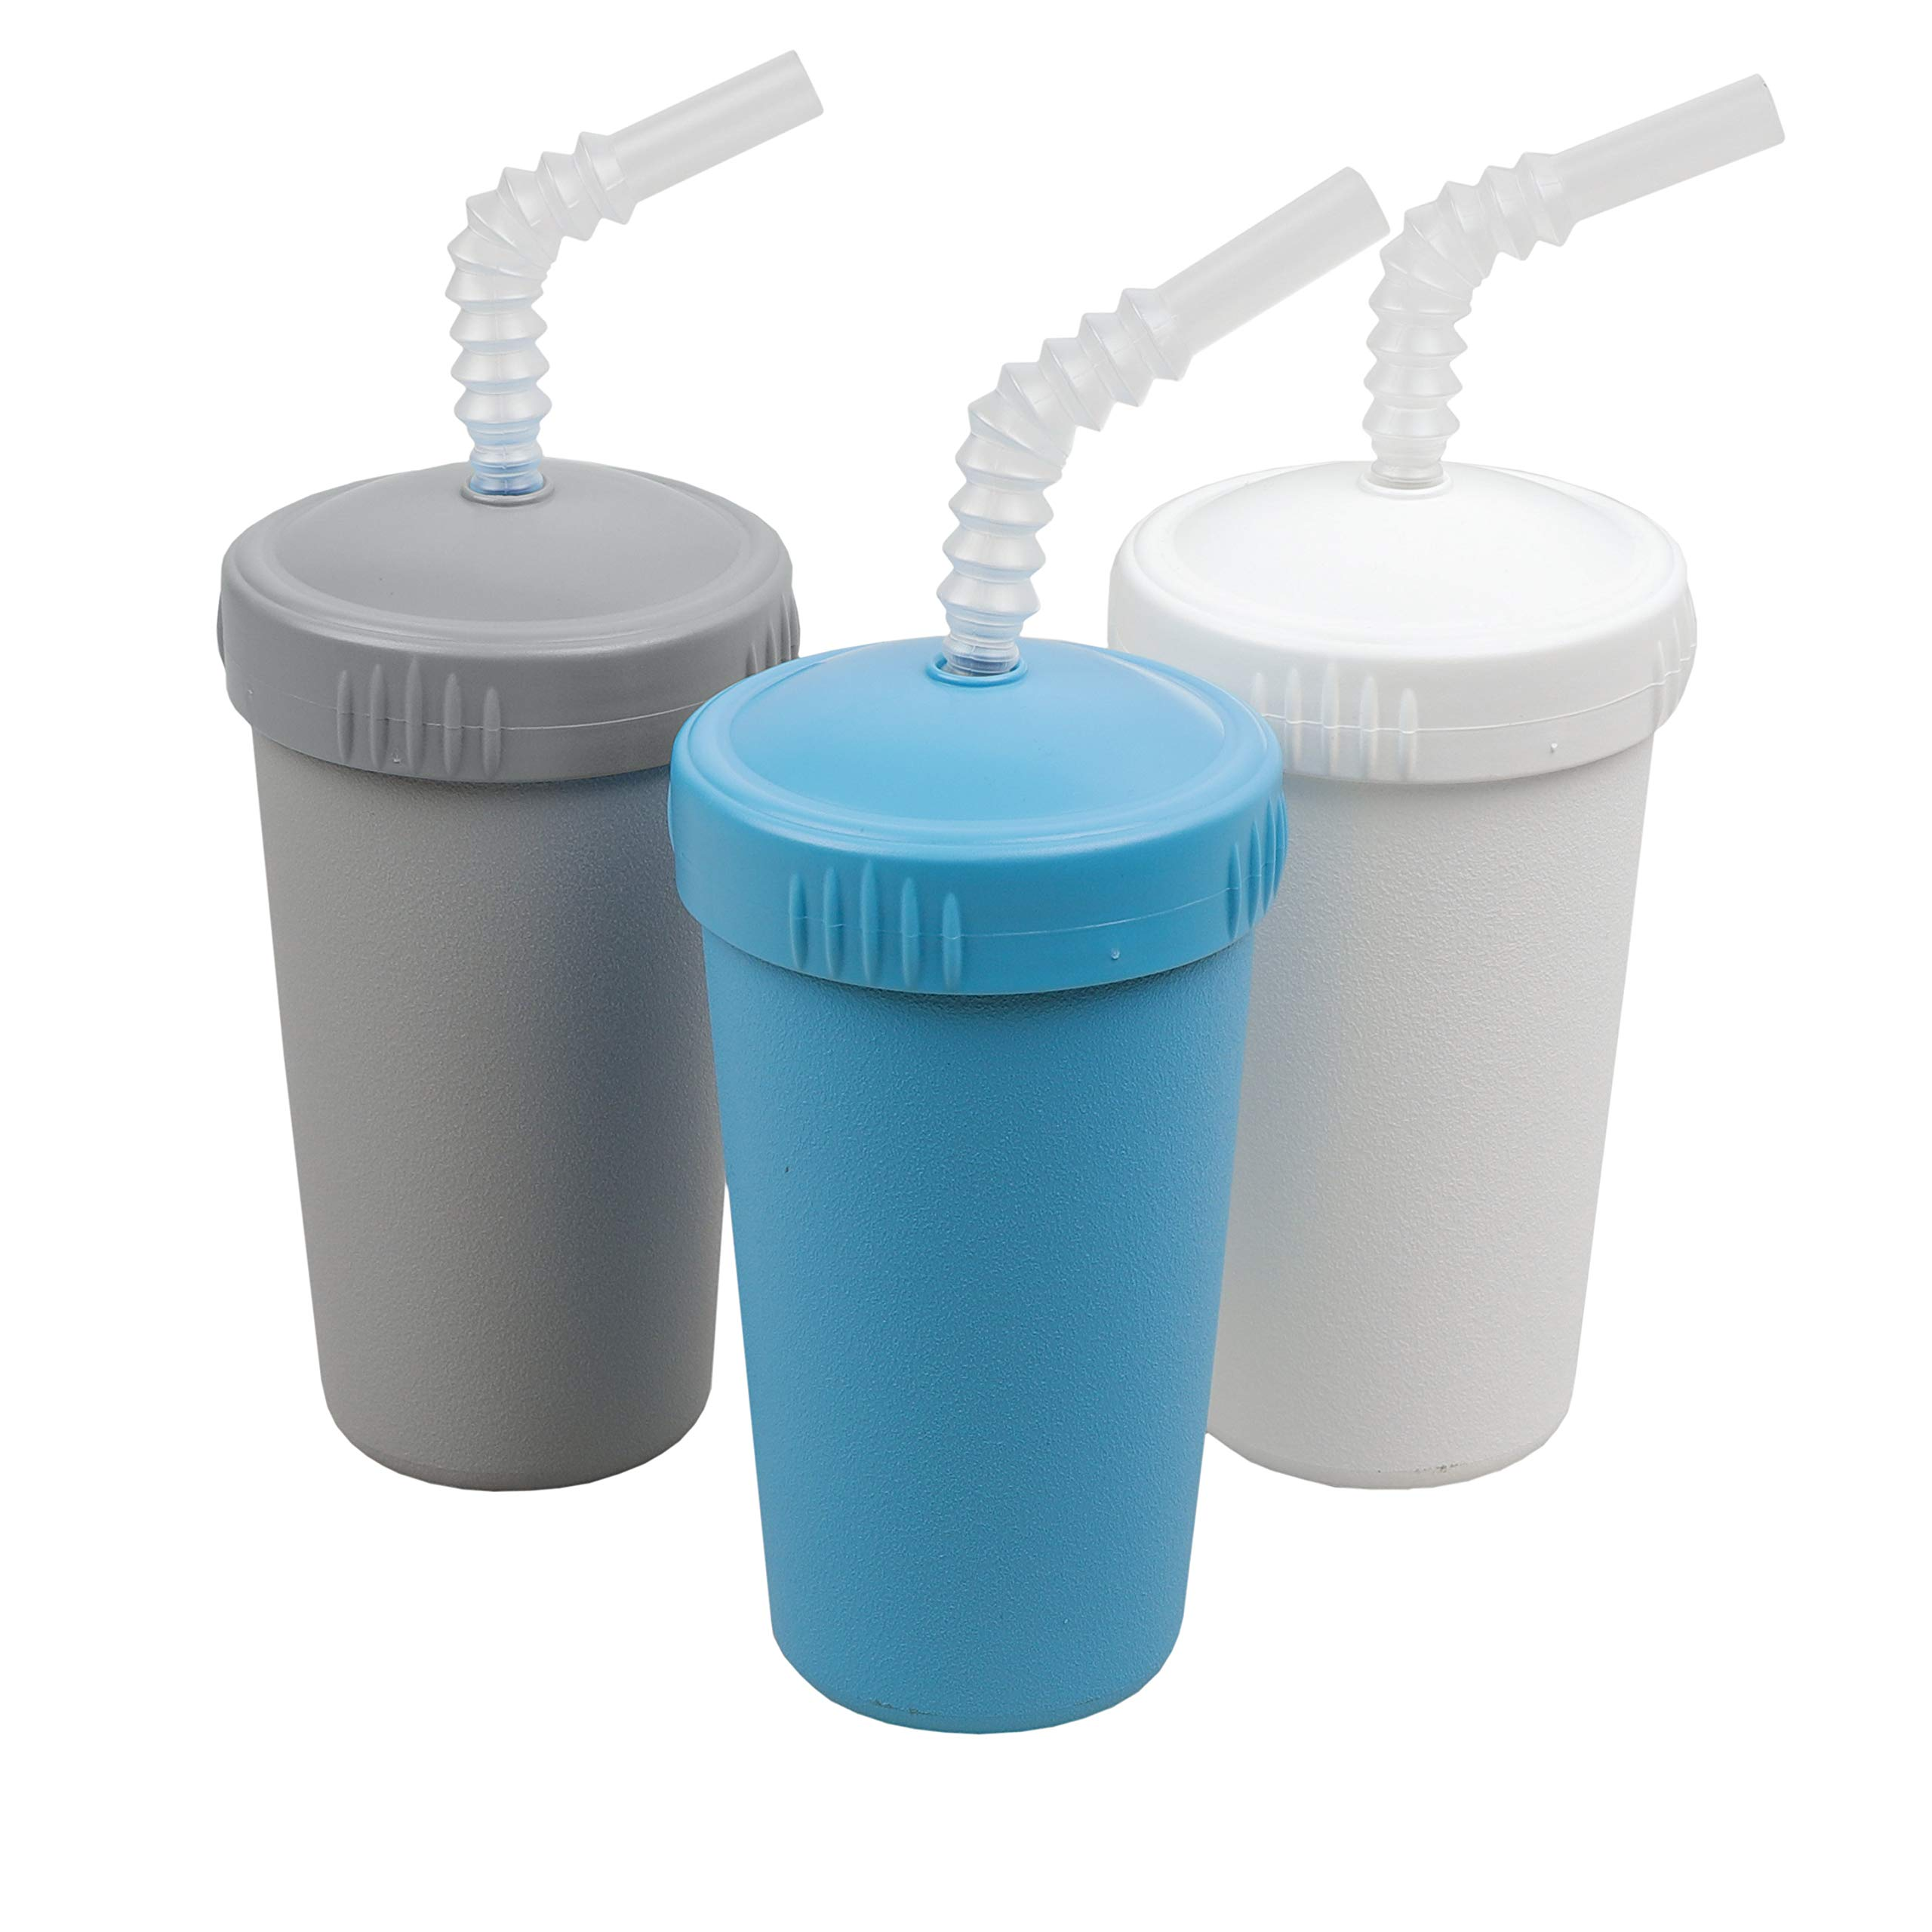 Re-Play Made in USA 3pk Straw Cups with Bendable Straw in Grey, White and Sky Blue   Made from Eco Friendly Heavyweight Recycled Milk Jugs - Virtually Indestructible (Modern Blue)